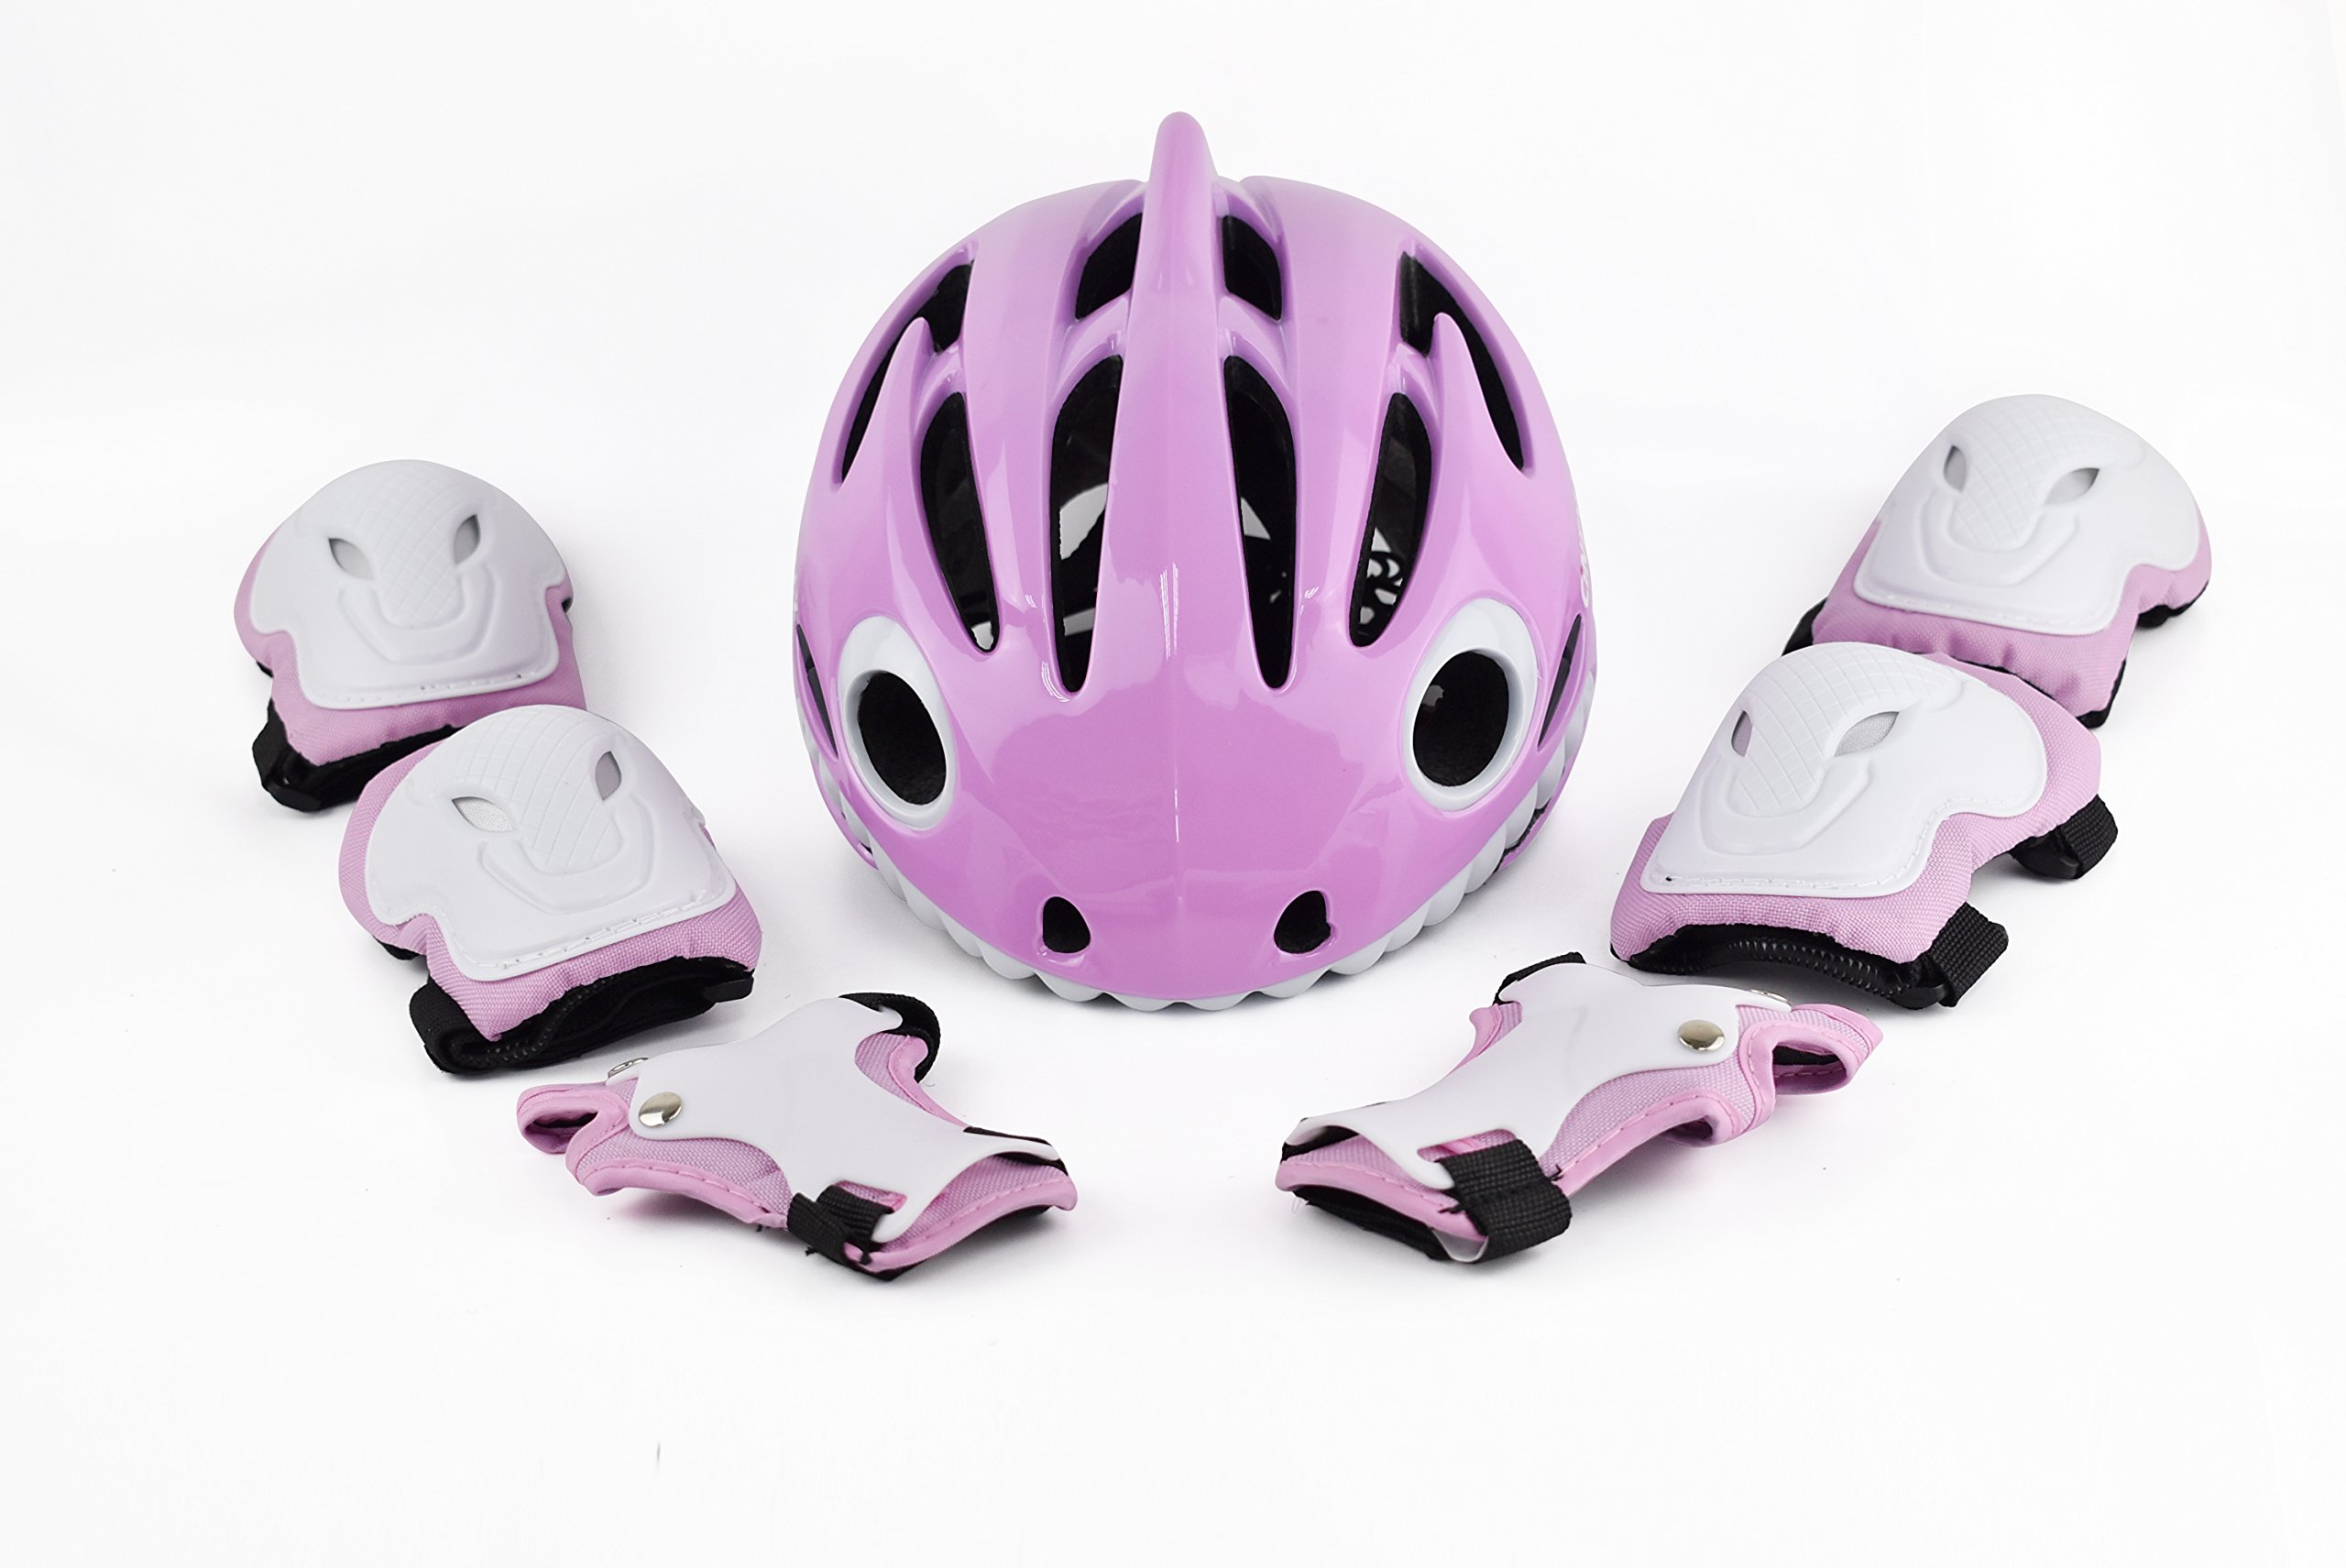 ADMIRE Kids Skateboard Skate Scooter Cycling Bike Helmet with Safety Knee Pads Elbow Wrist Protection Set Adjustable from Toddler to Youth Size for 3-10 Years Old Boys and Girls (Pink-01, XS)